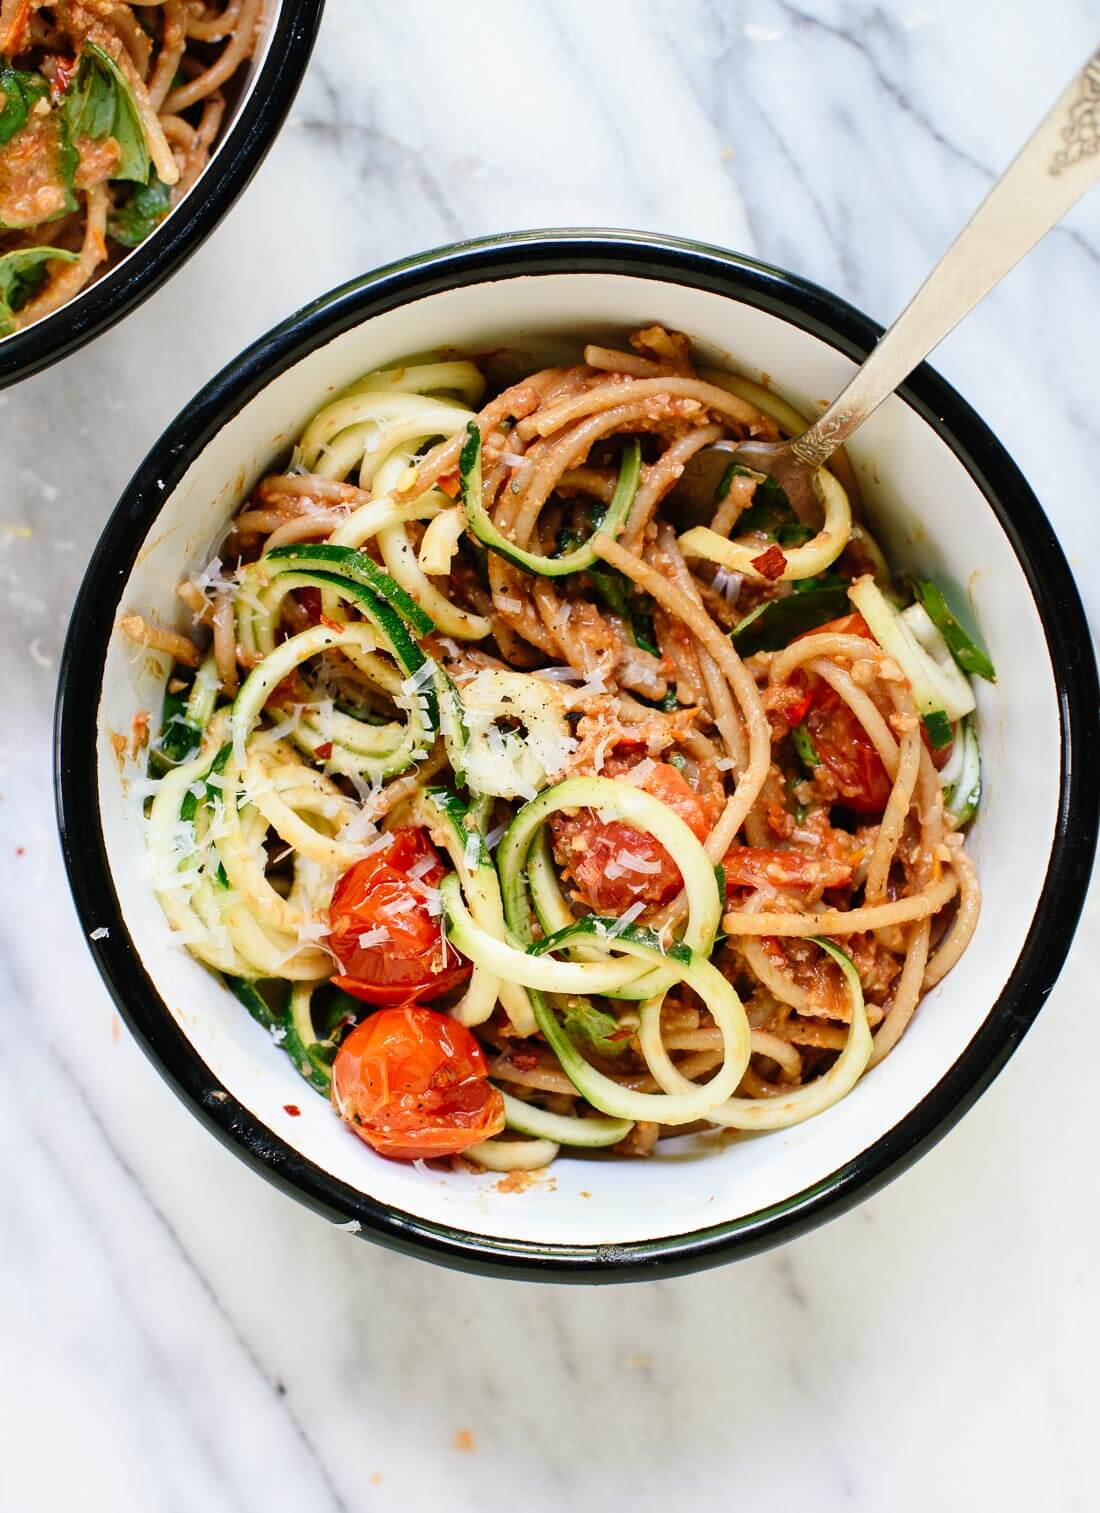 Double Tomato Pesto Spaghetti with Zucchini Noodles from cookieandkate.com on foodiecrush.com